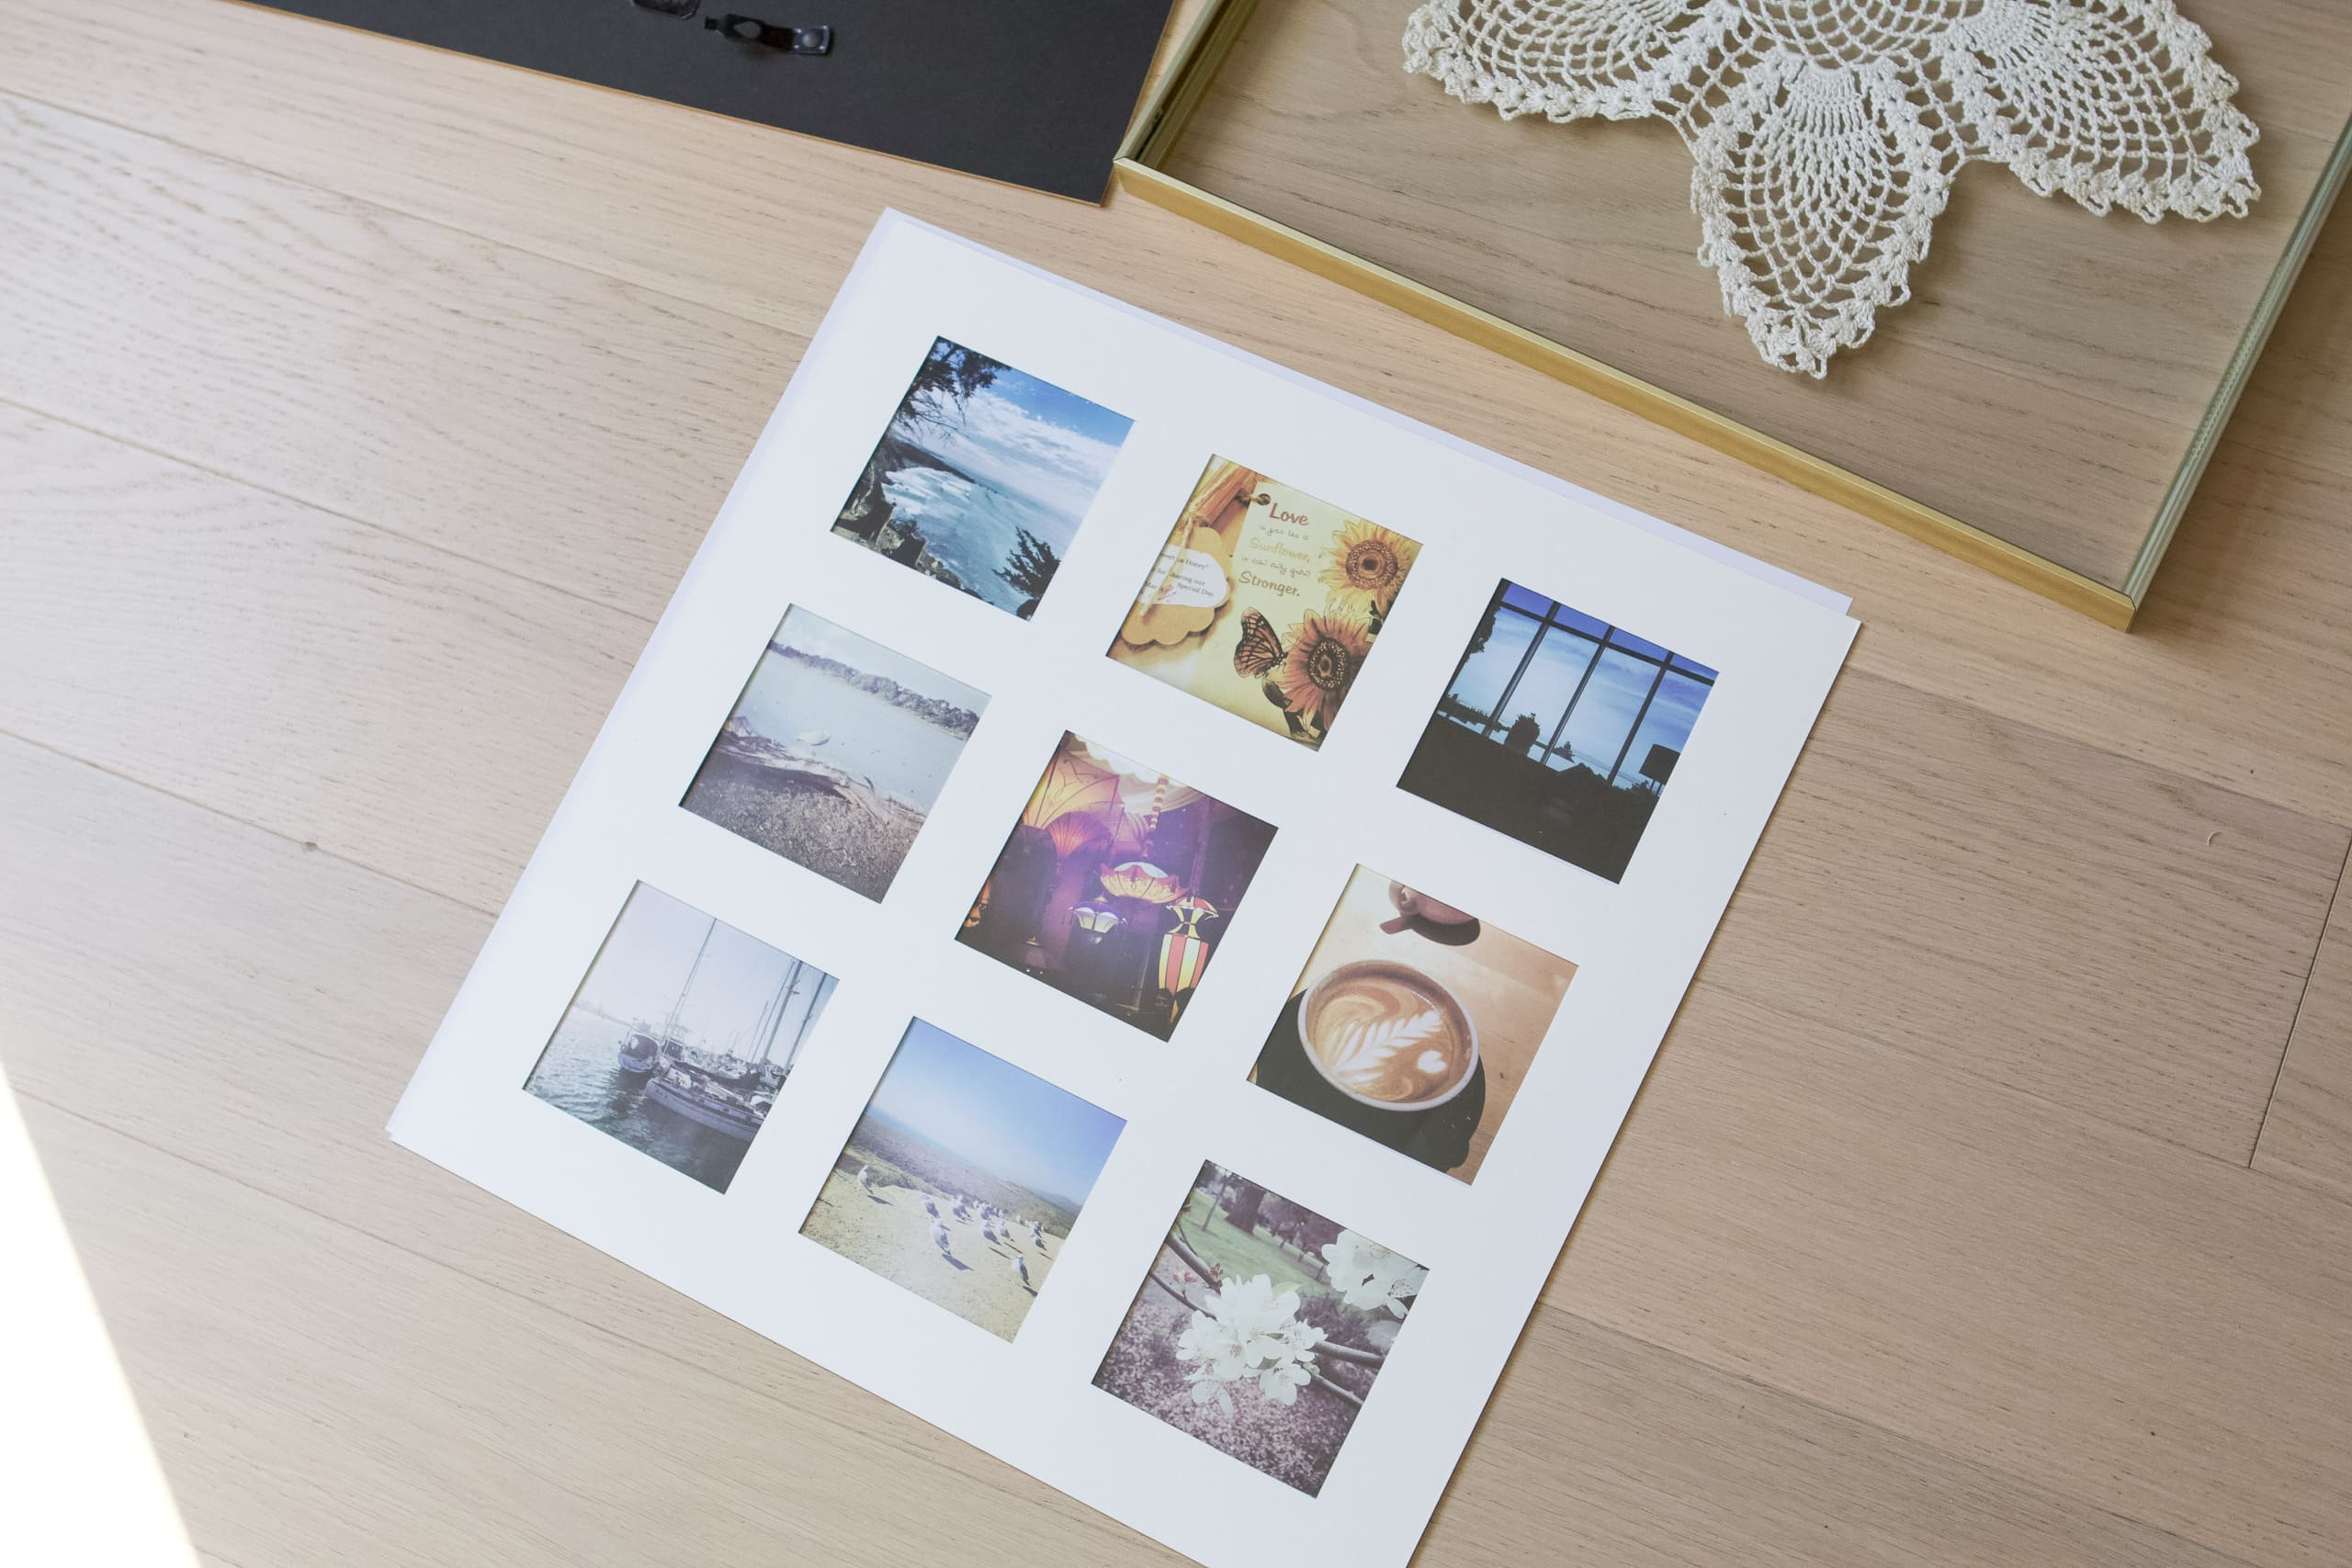 finding a square 16x16 frame